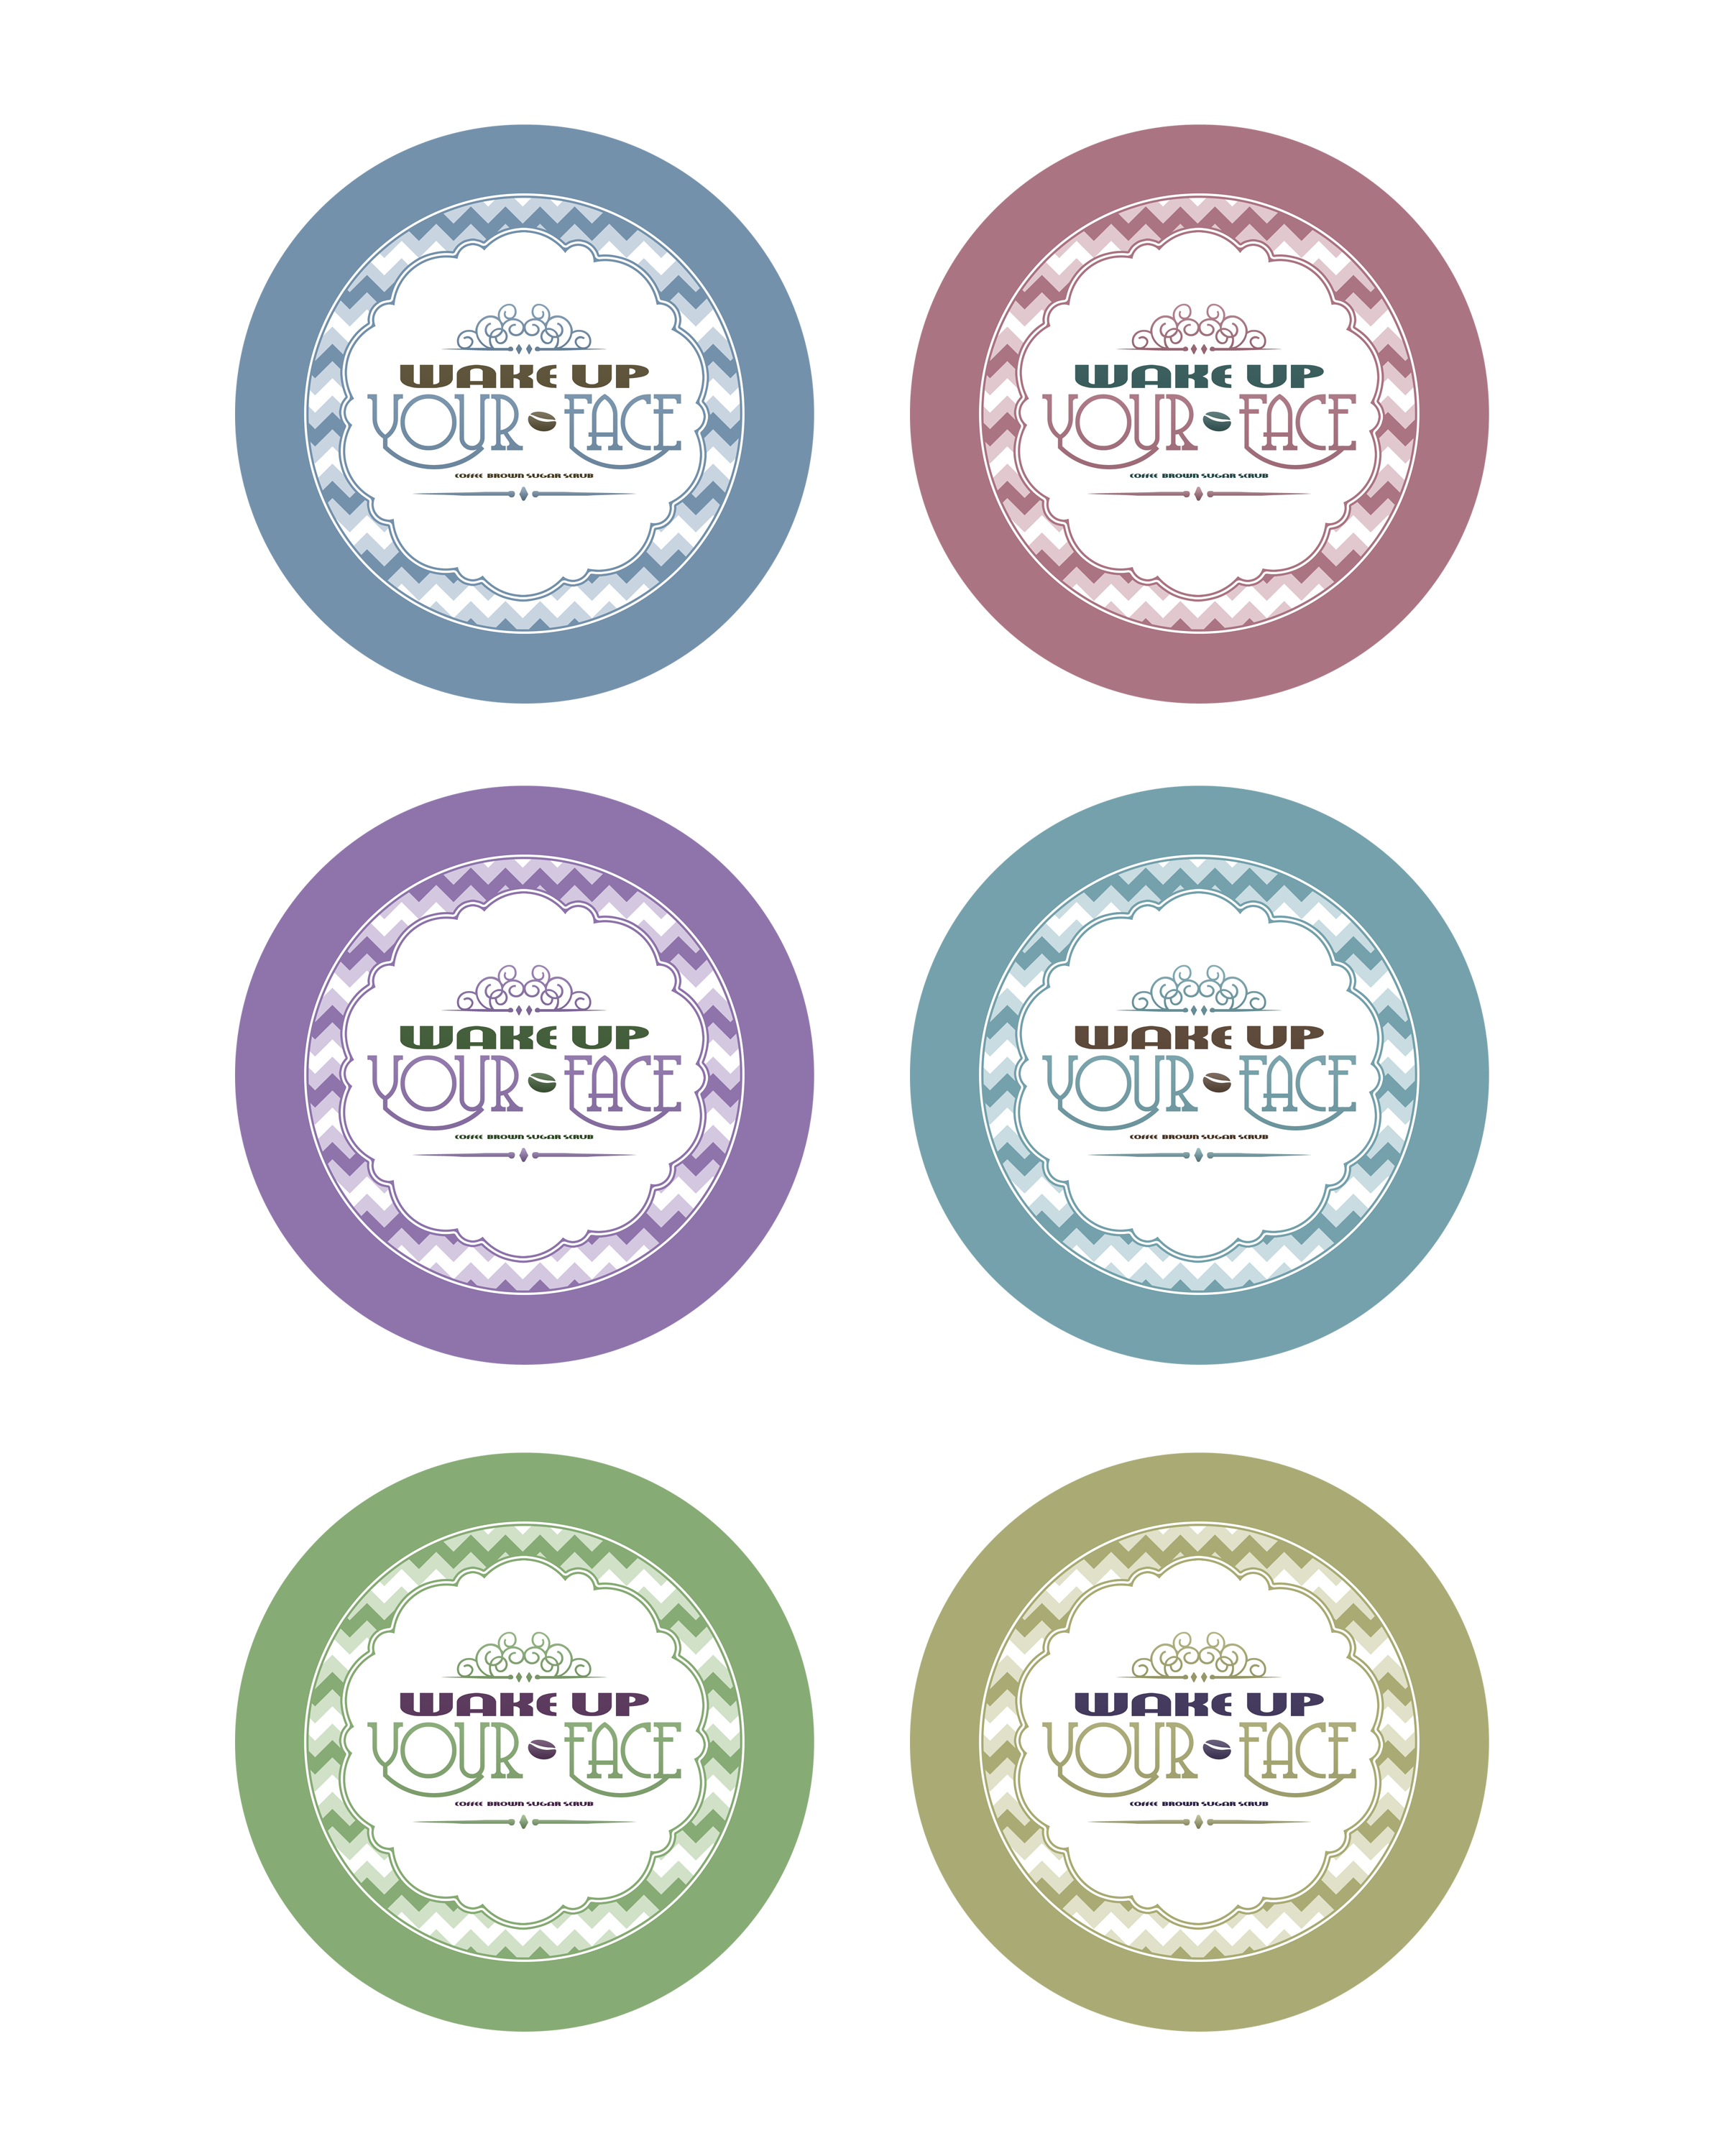 It's just an image of Irresistible Printable Sugar Scrub Labels